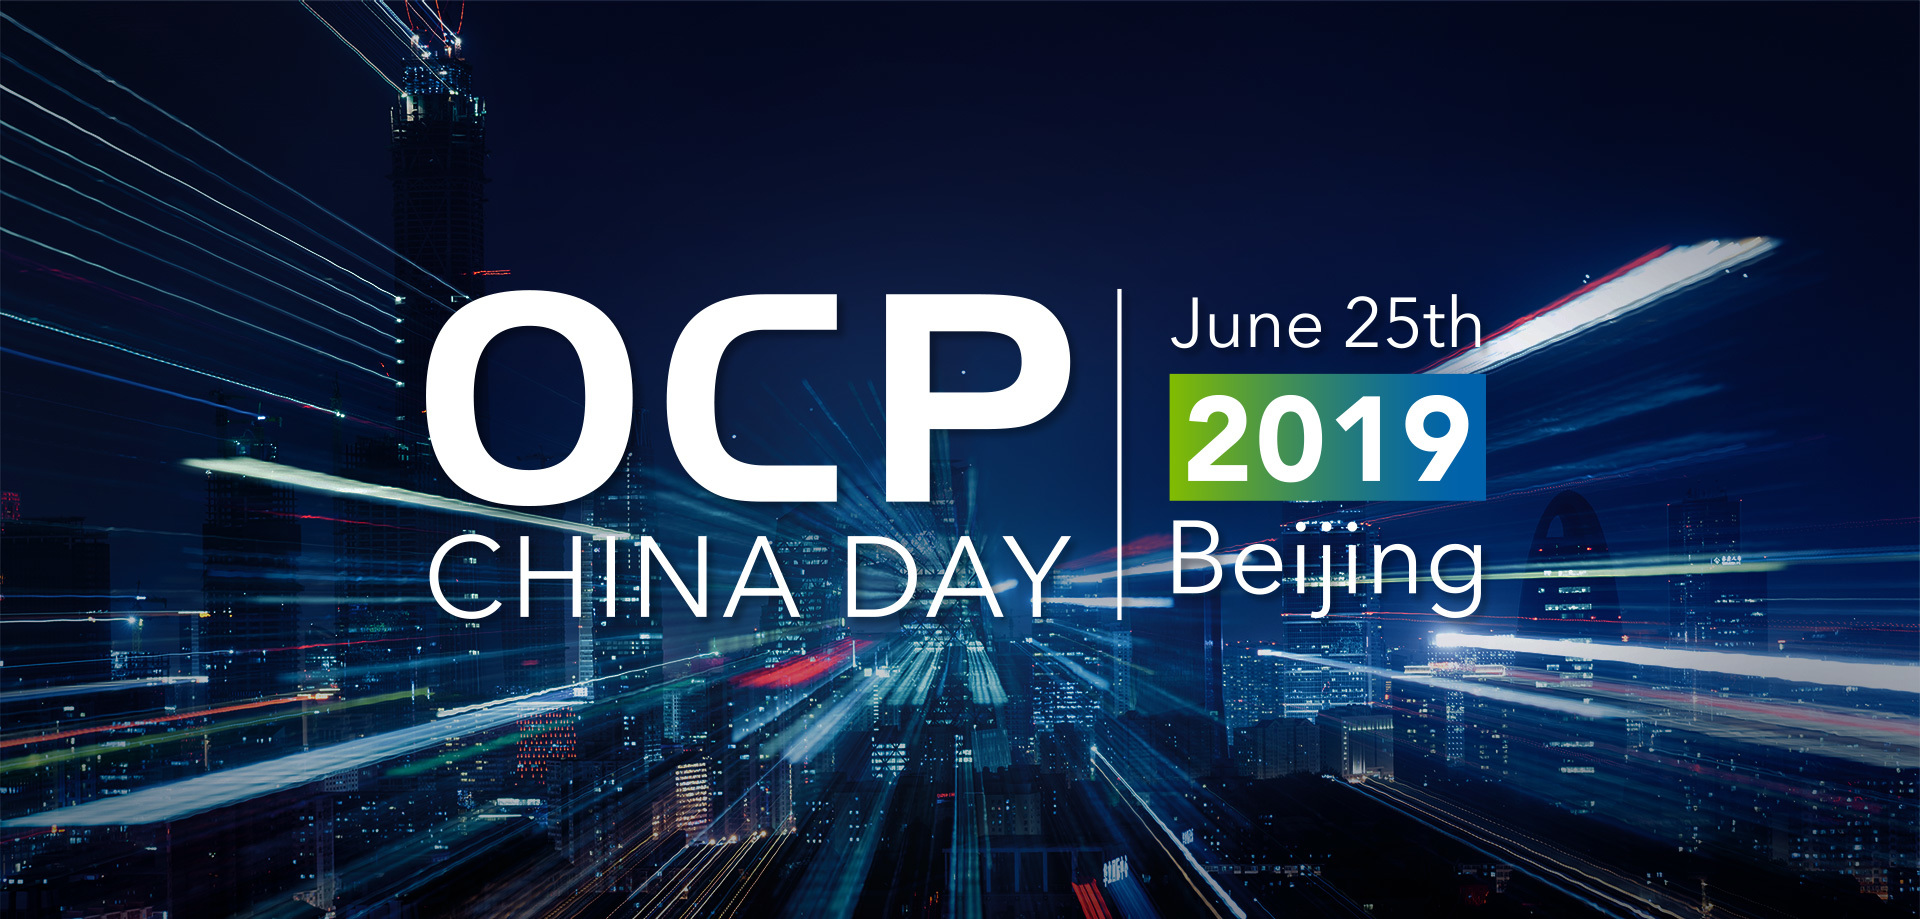 OCP China Day